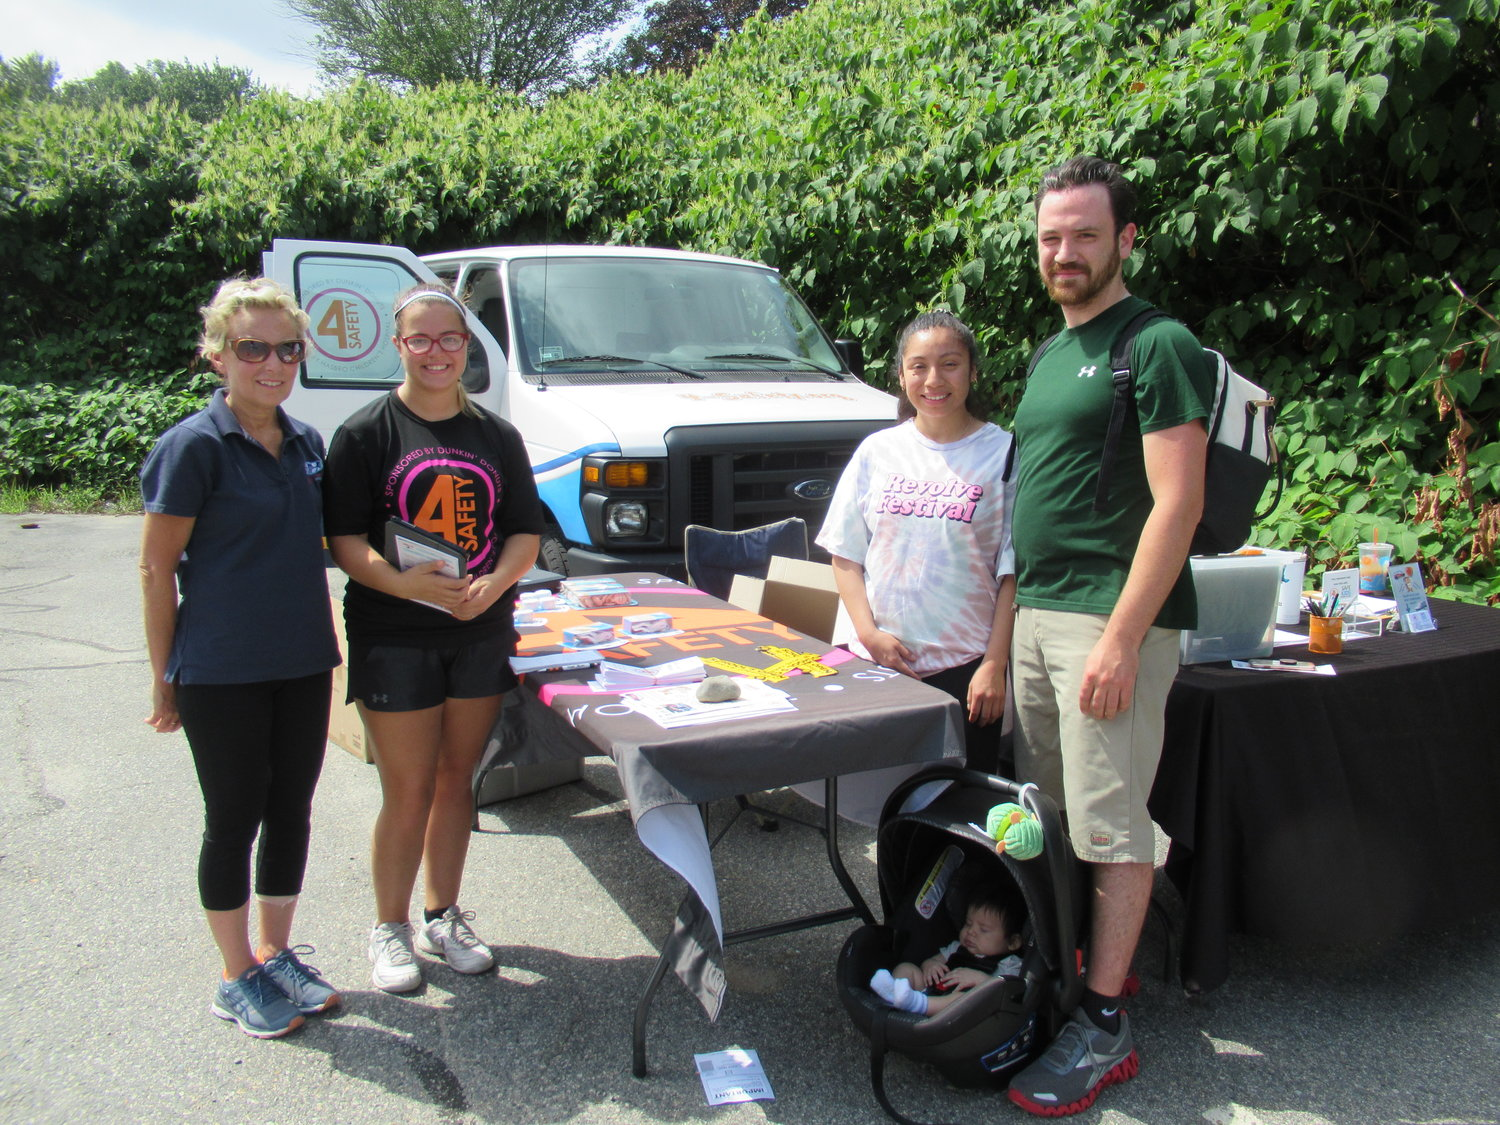 SPECIAL SAFETY: Couples like Michael McLynch and Jennifer Dela Cruz found the Tri-County Community Action Agency's first-ever farmers market the perfect spot to learn about child seat safety from Hasbro Children's Hospital staffers Dina Burstein and Leah Kiernan.